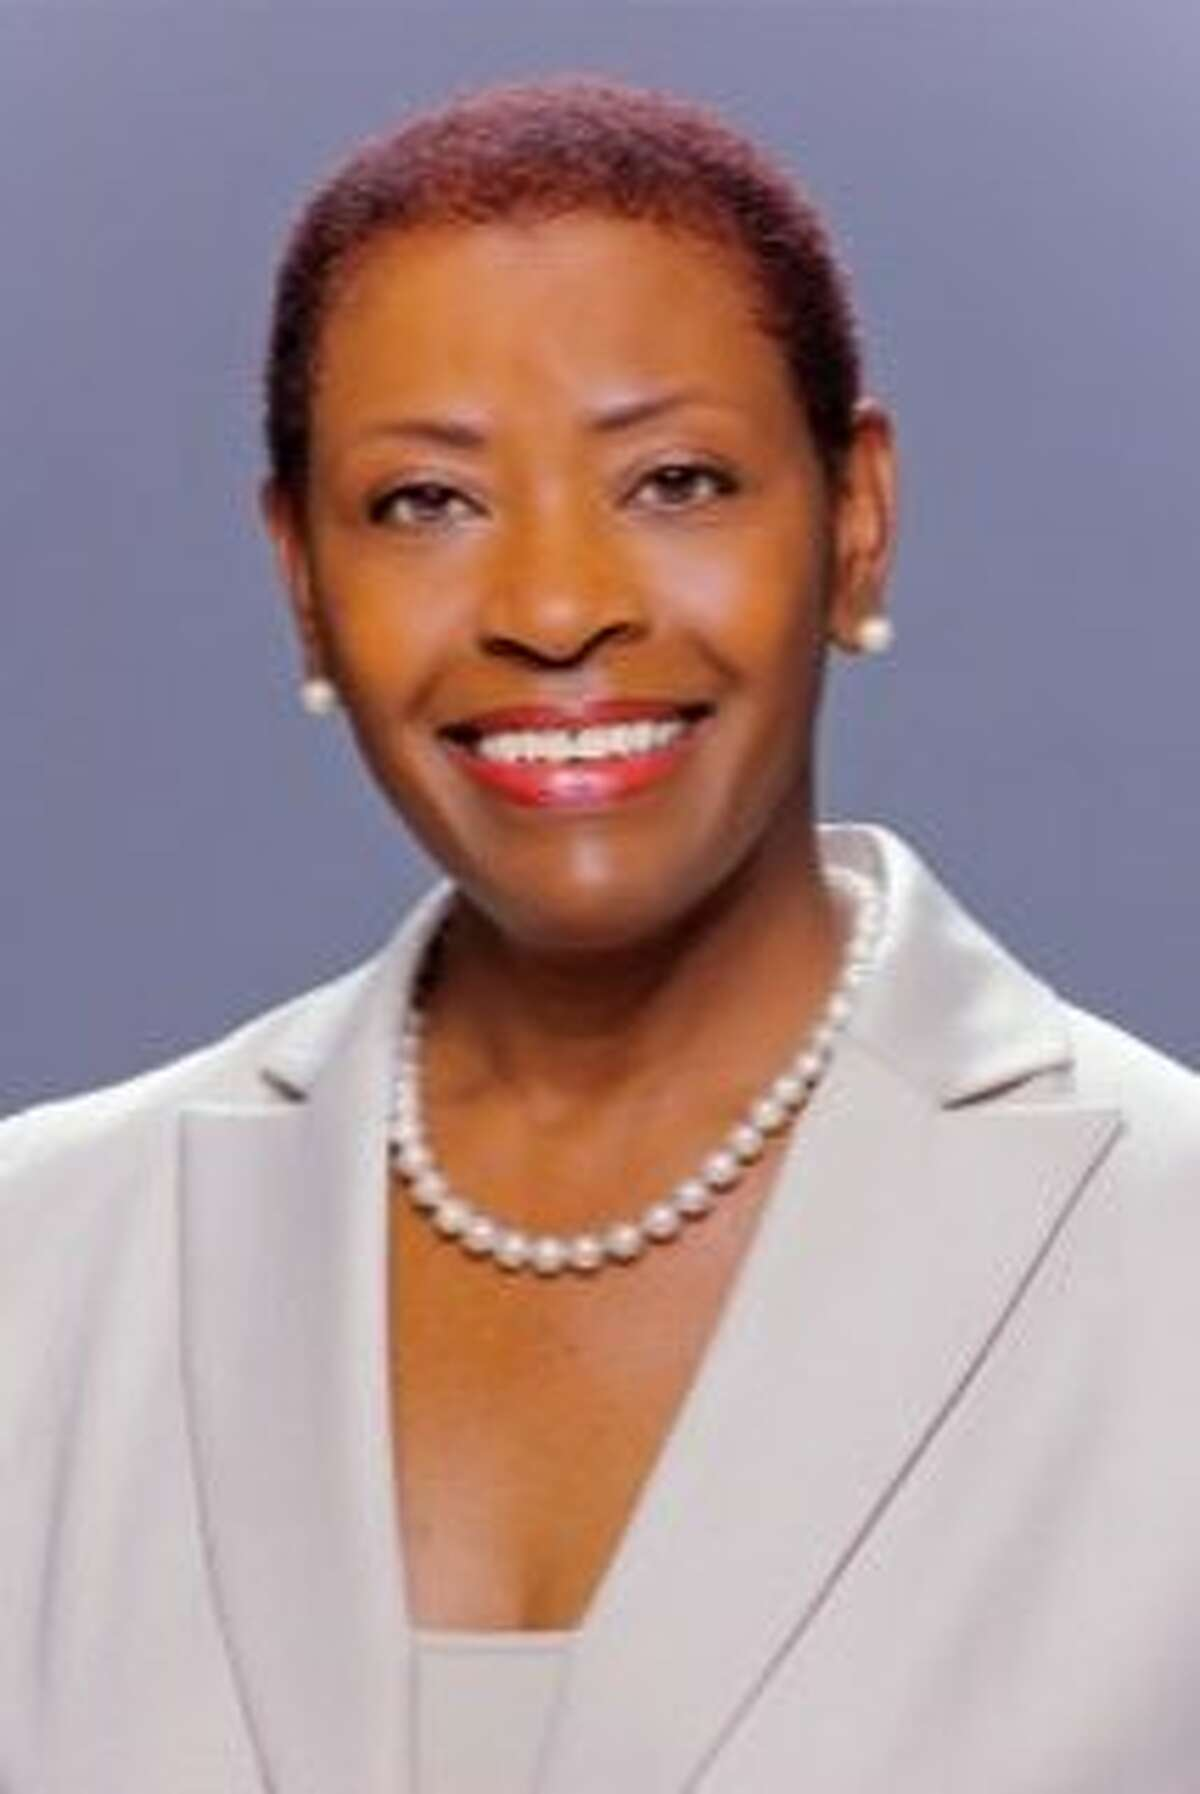 Diana Becton, who served as a Contra Costa County Superior Court judge for 22 years, has been appointed interim district attorney in Contra Costa.